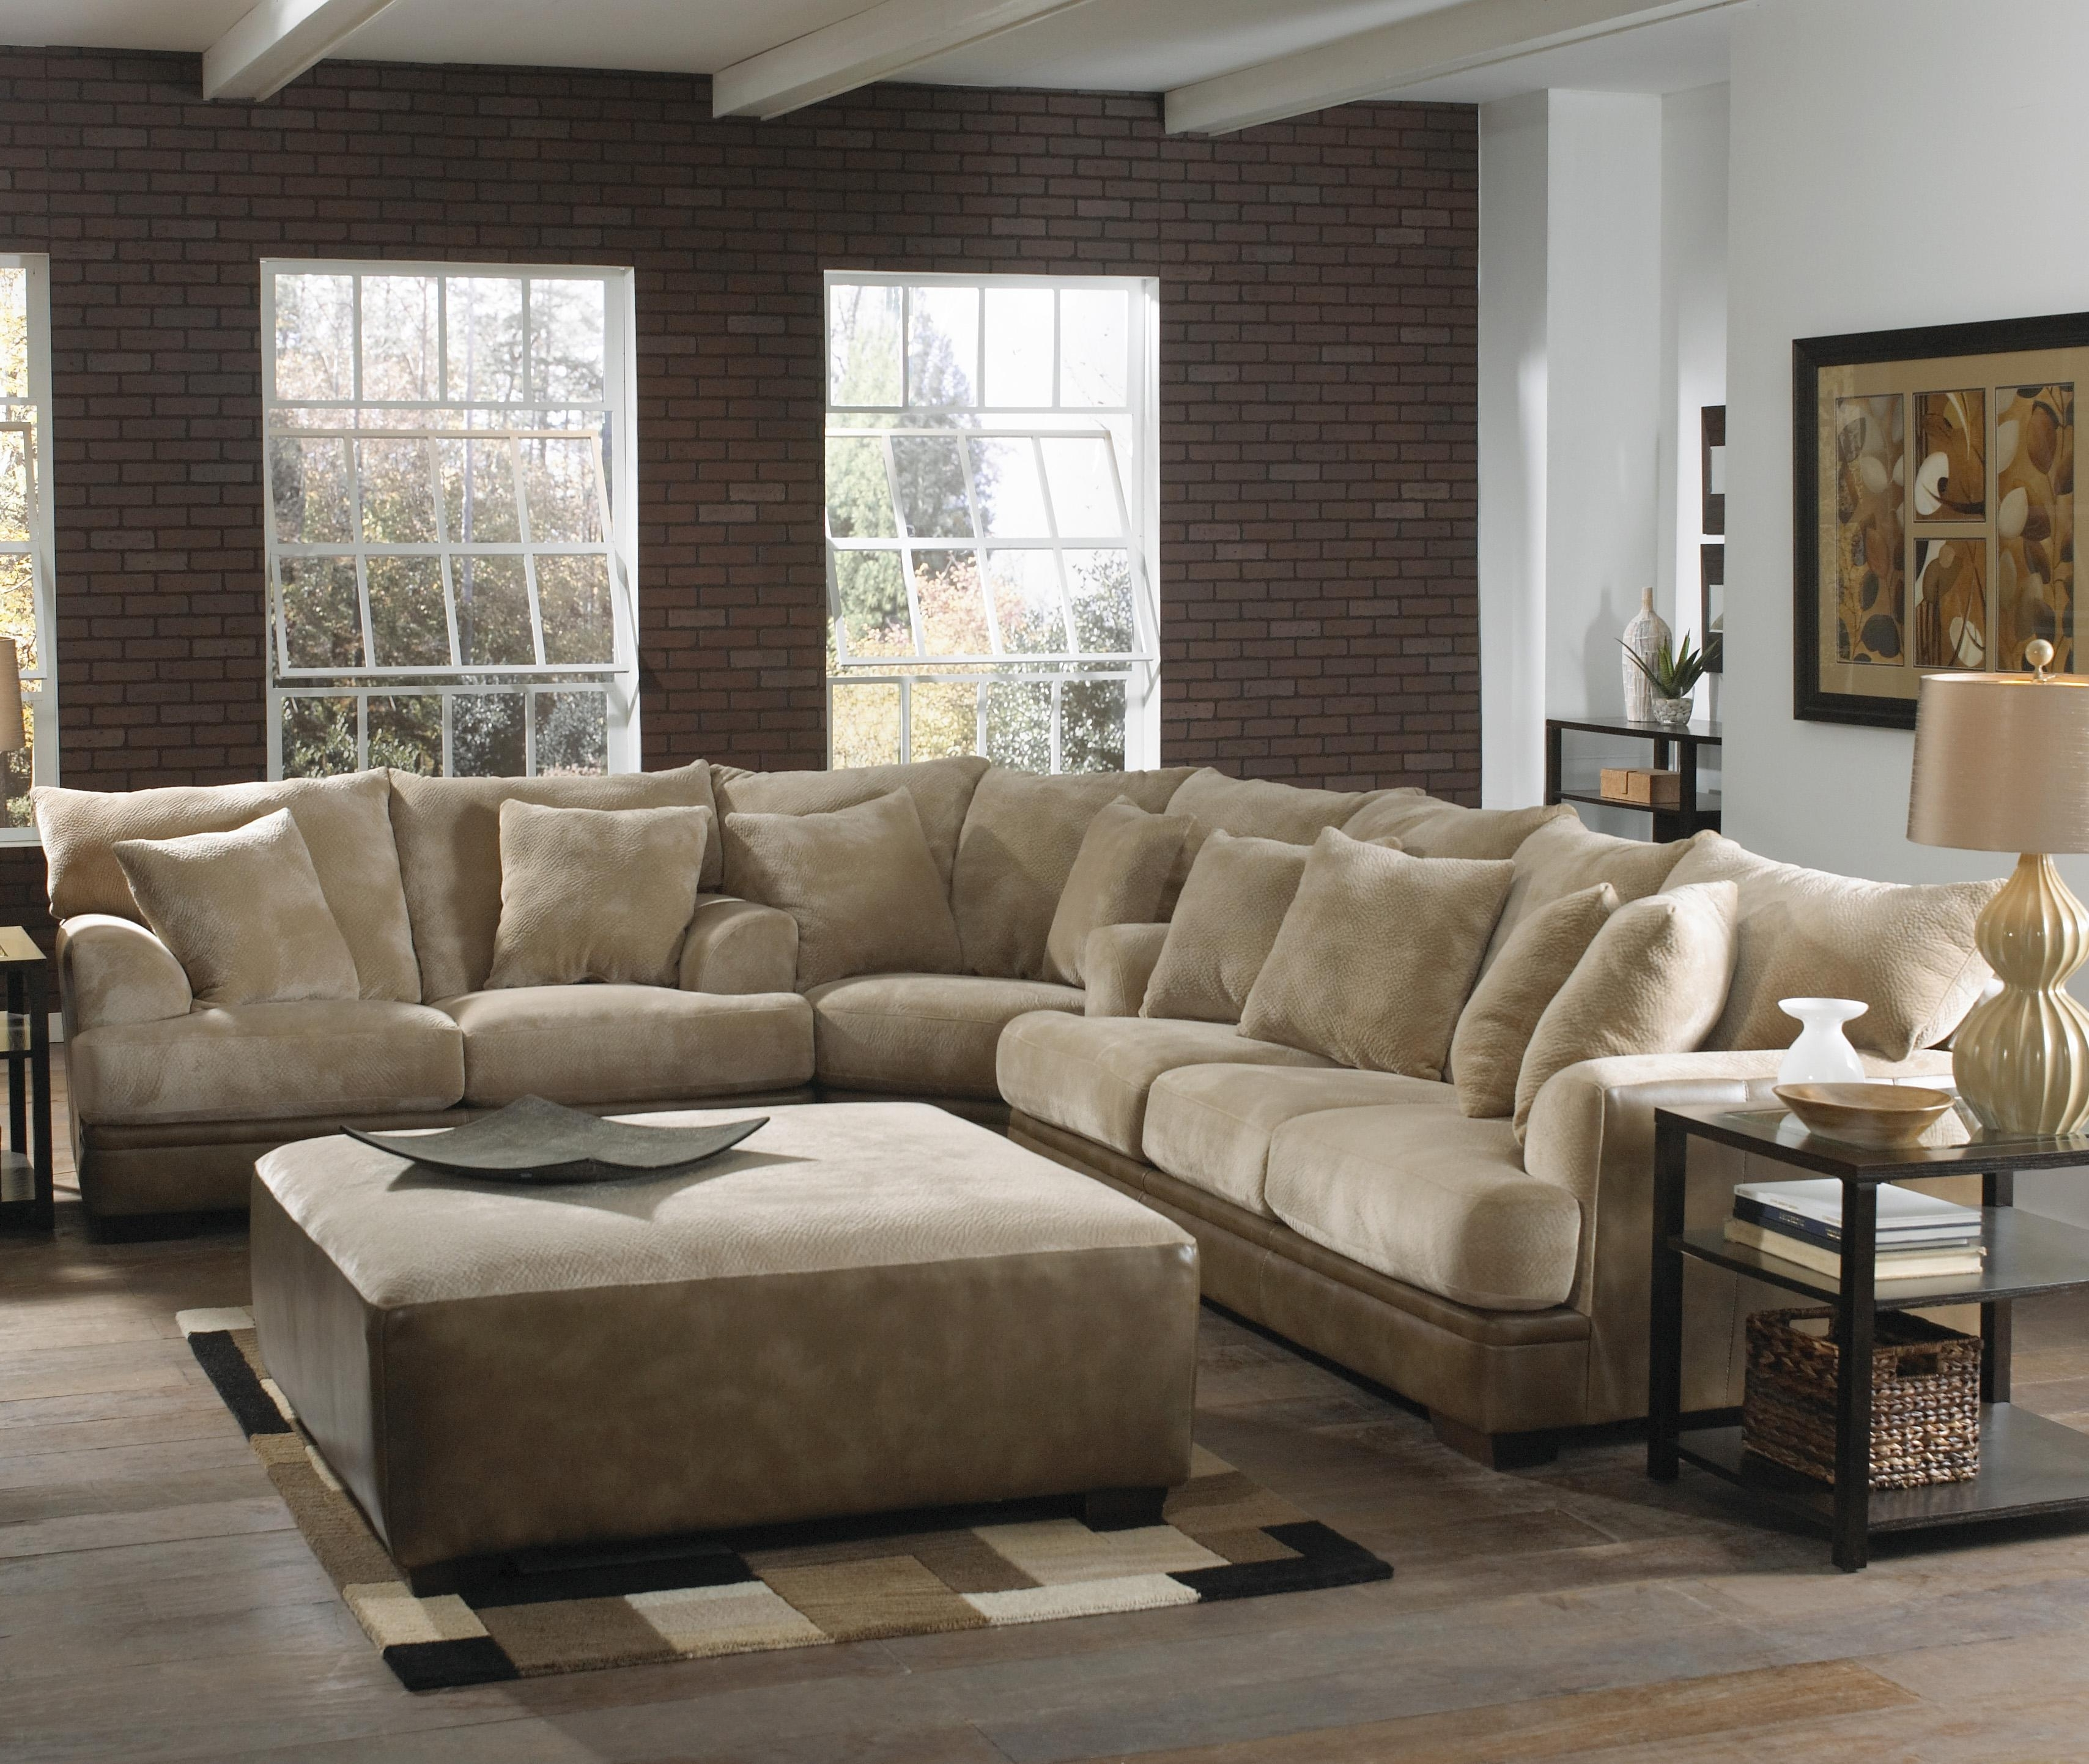 Rustic Wooden Laminate Flooring With Light Brown Sofa Using Pertaining To Well Liked Sectional Sofas At The Brick (View 9 of 15)